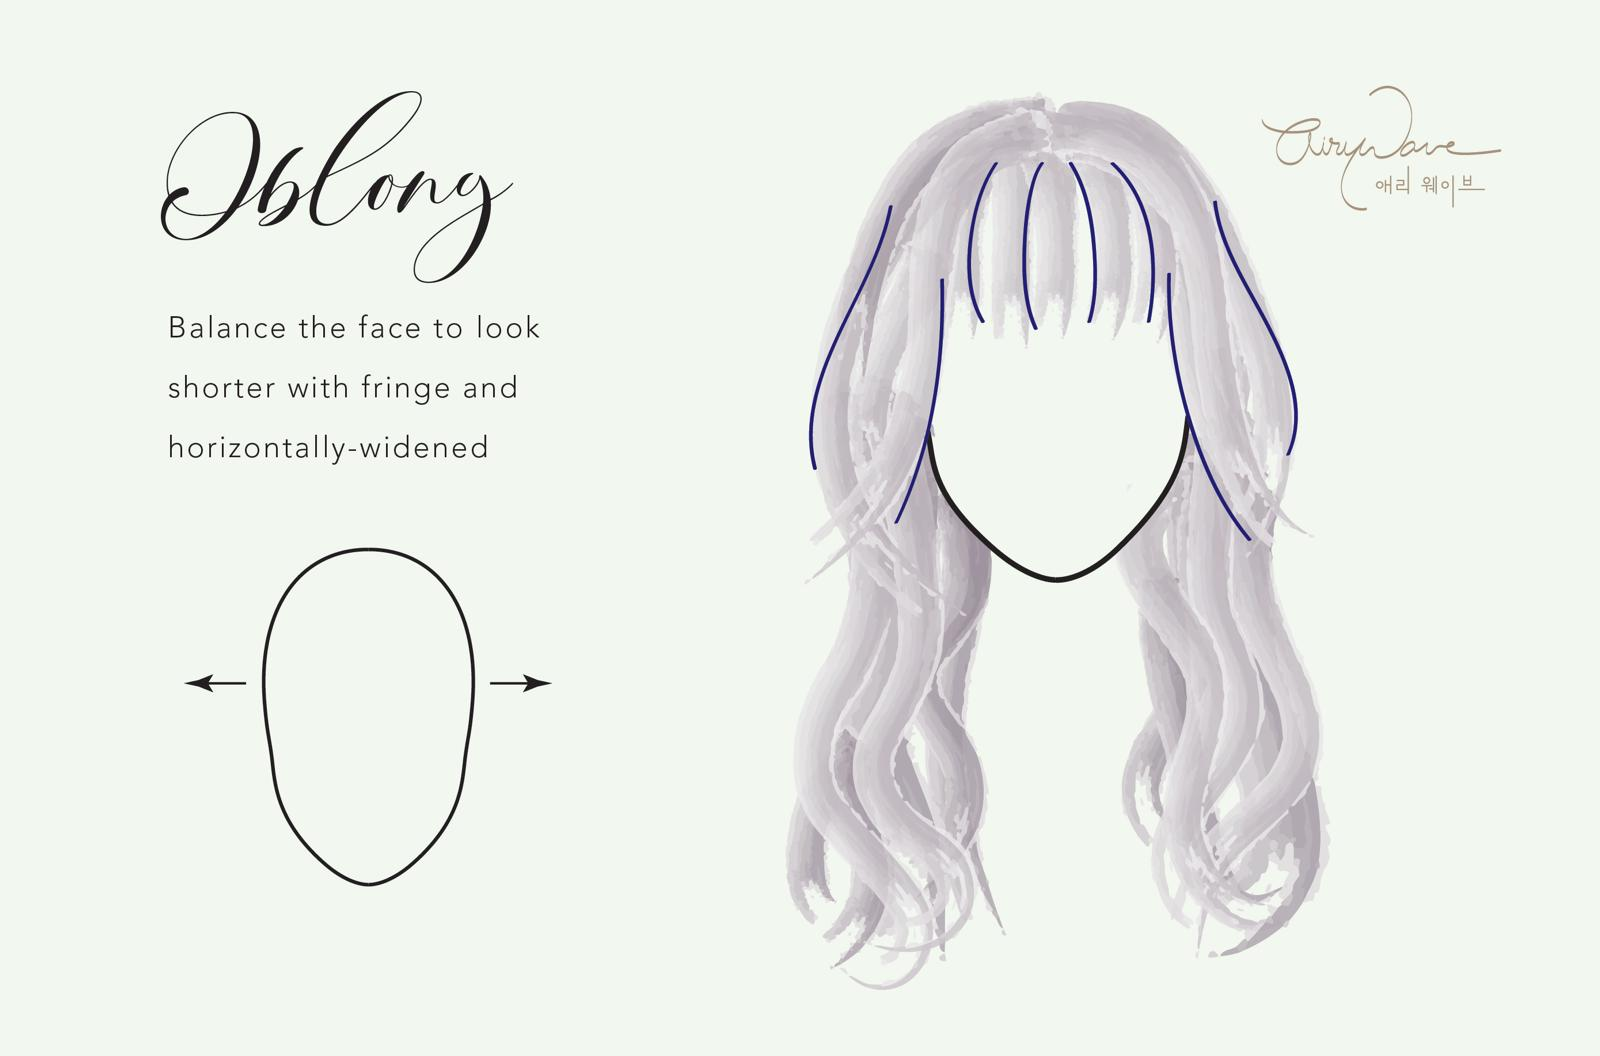 Perm Style for Oblong Face